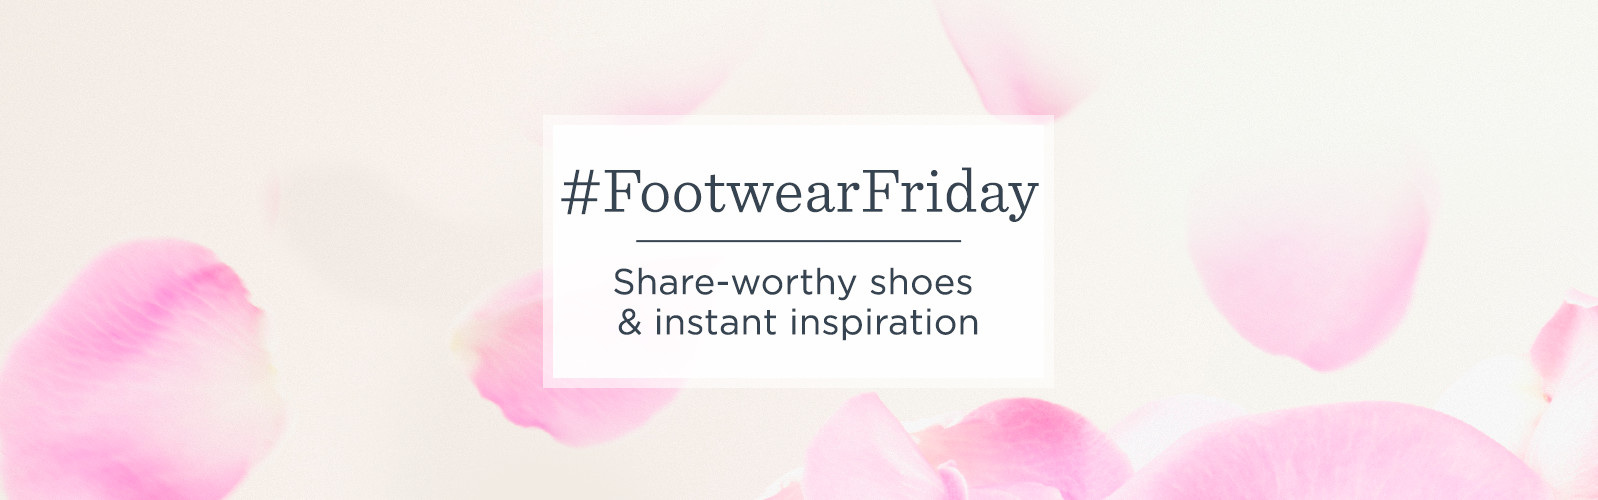 #FootwearFriday. Share-worthy shoes & instant inspiration